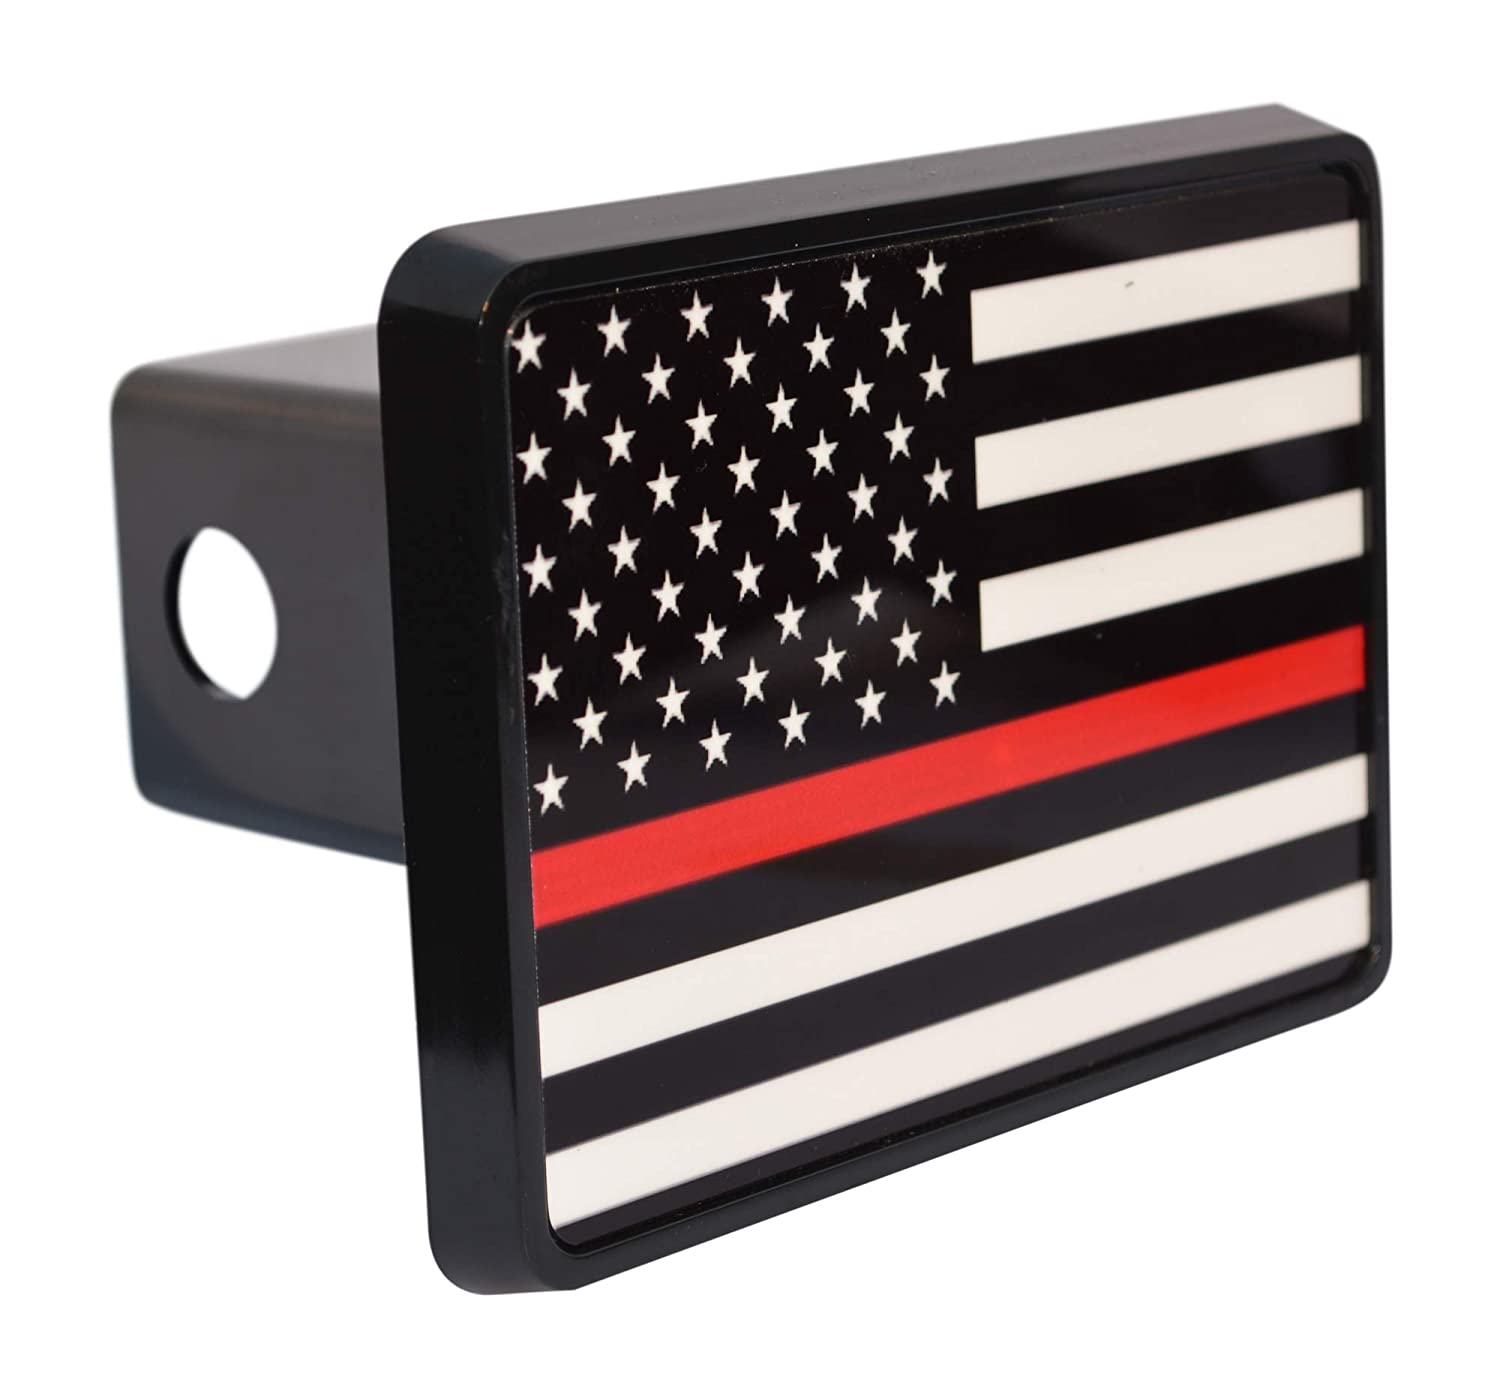 Rogue River Tactical Thin Red Line Flag Trailer Hitch Cover Plug US Firefighter Fire Fighter Truck Department FD VV756